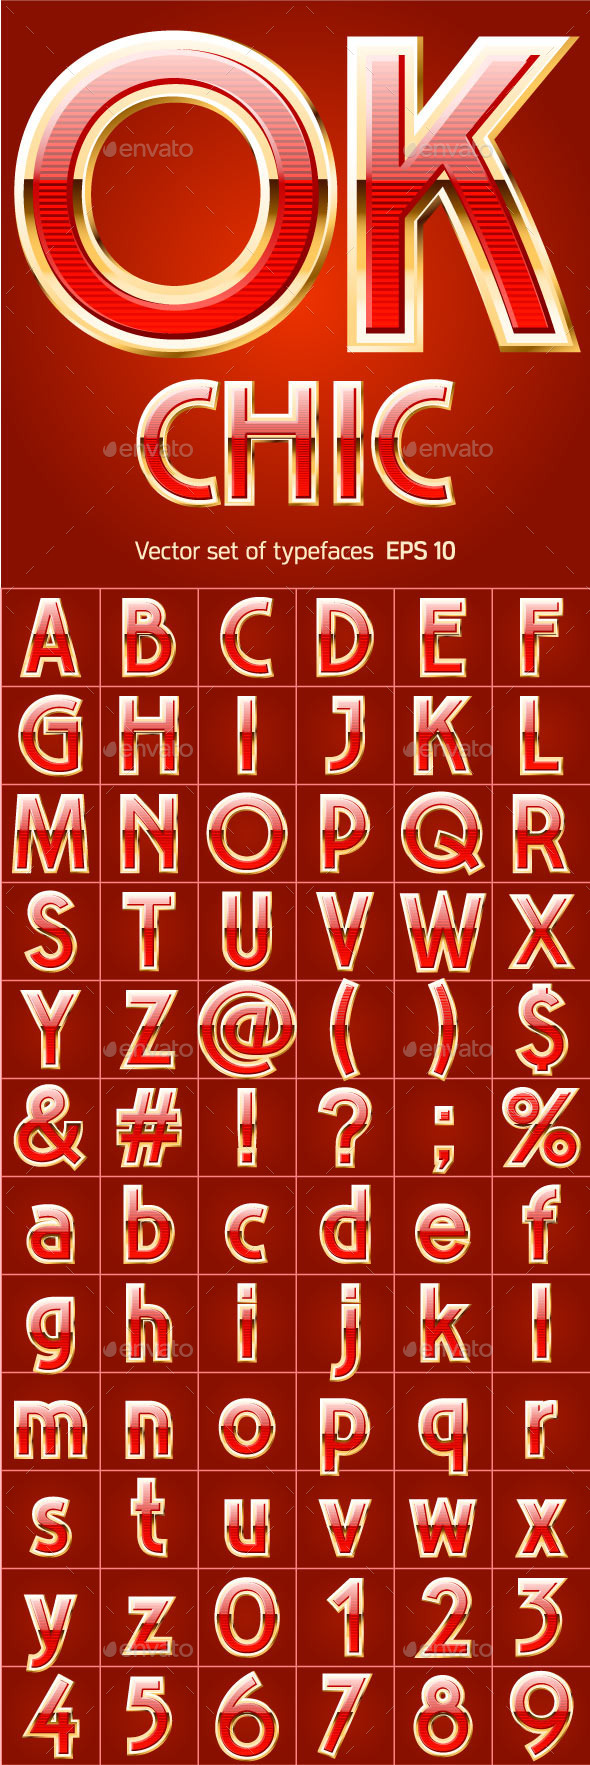 GraphicRiver Red Alphabet with Golden Border 11003480